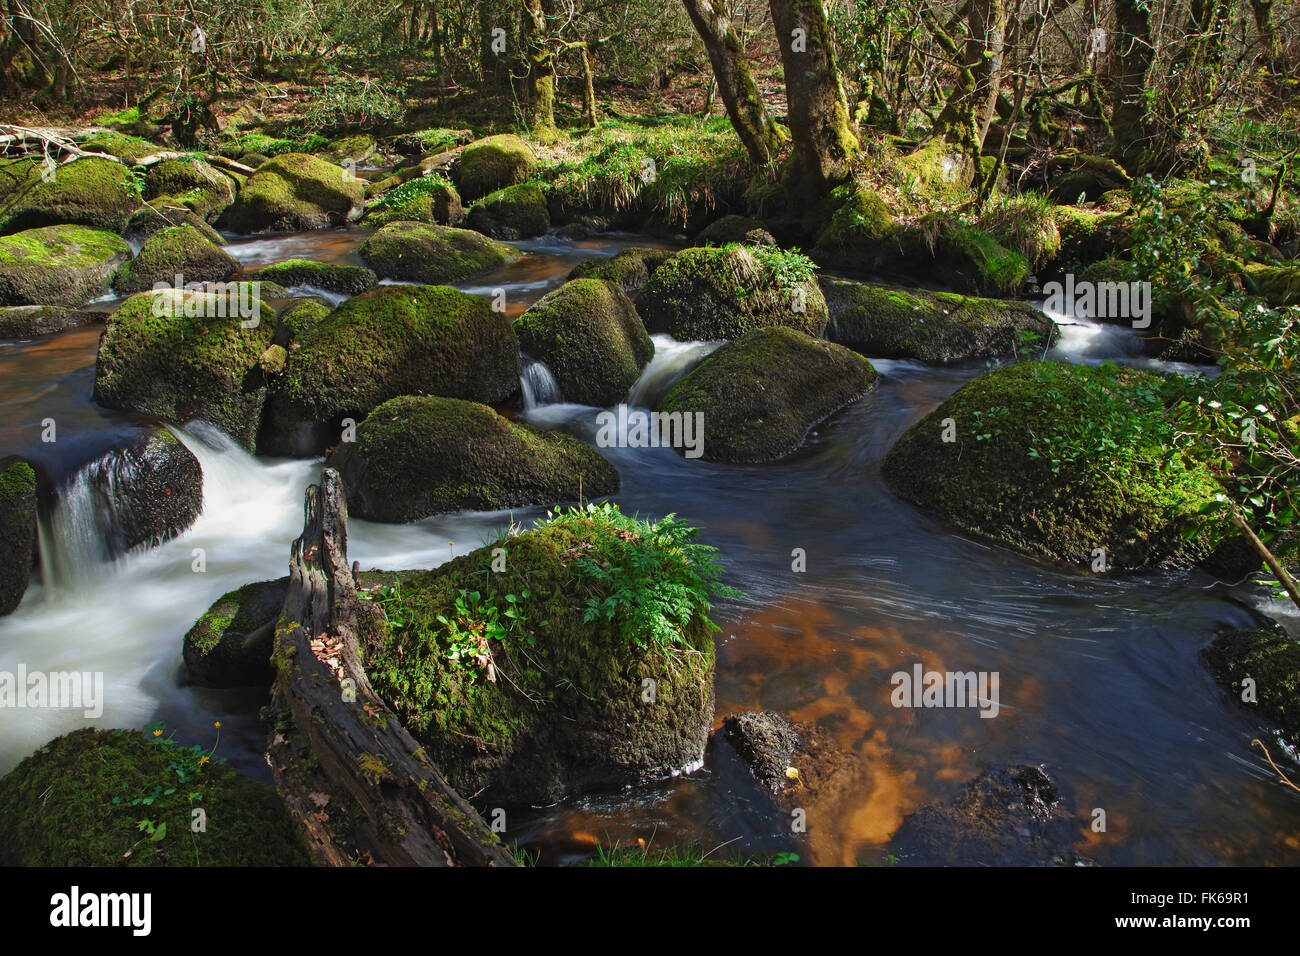 Water flowing around rocks in the Bovey River, Lustleigh Cleave, near Manaton, Dartmoor National Park, Devon, England - Stock Image